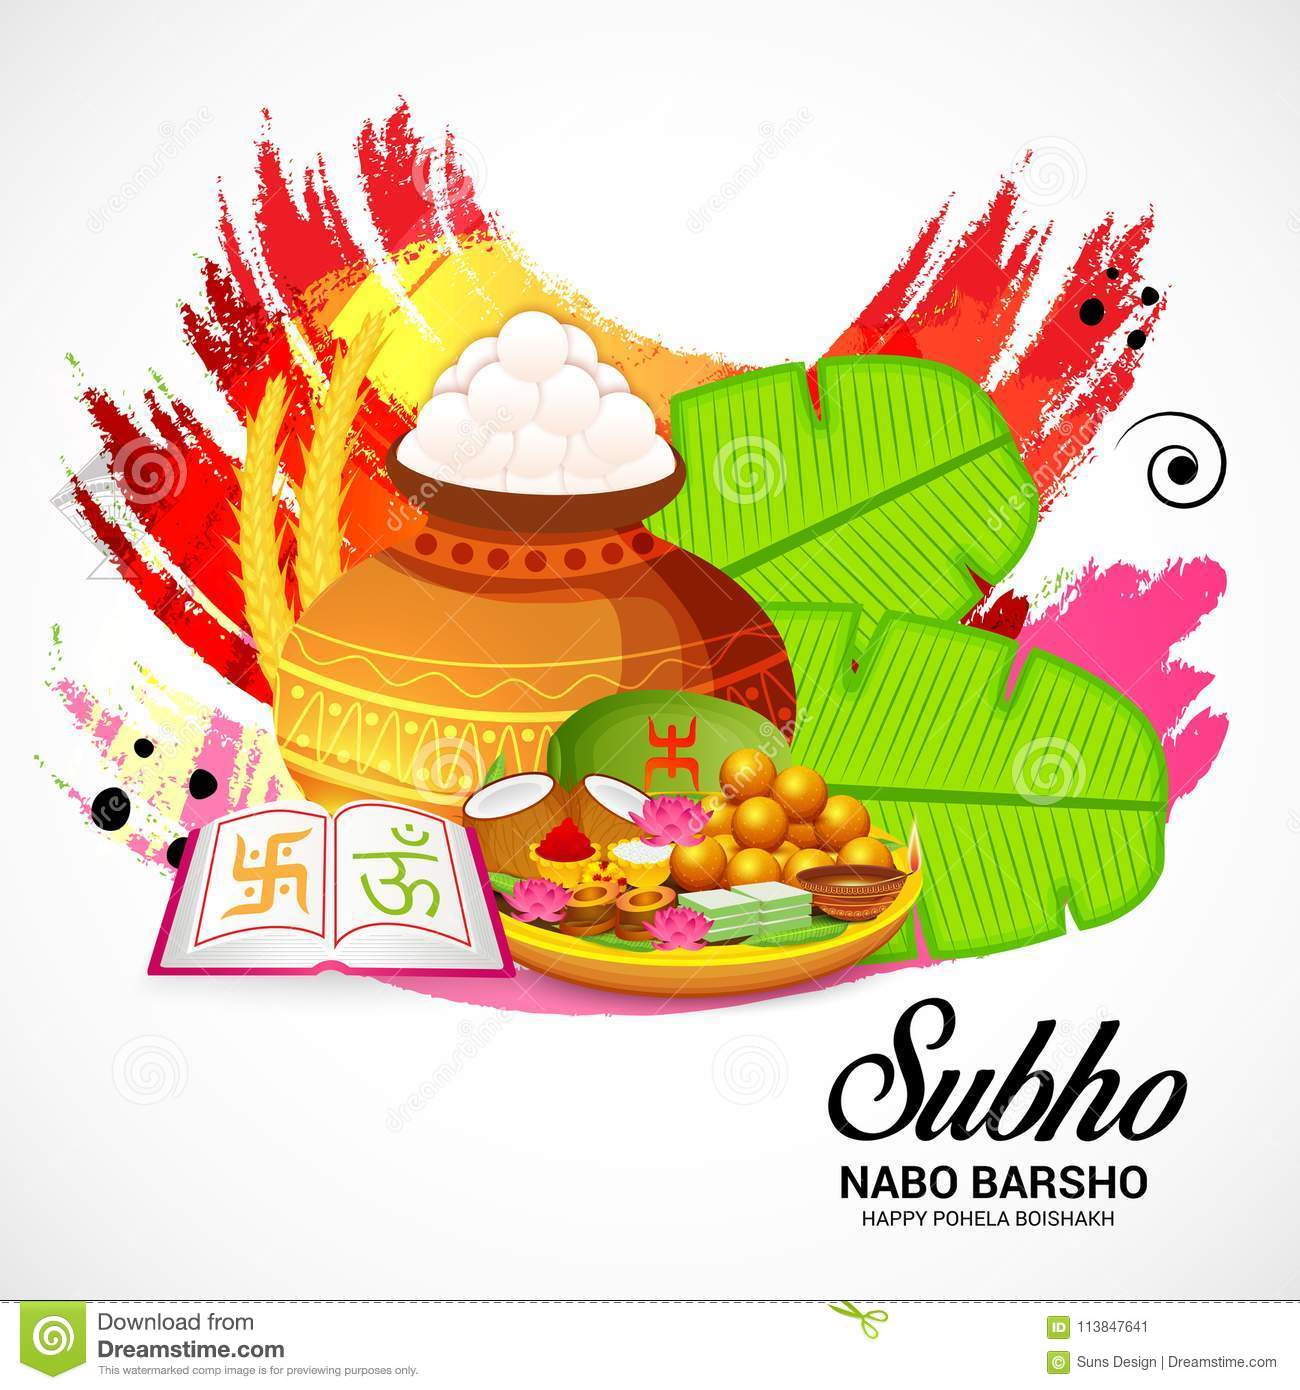 Bengali New Year Subho Nabo BarshoHappy Pohela Boishakh A Mud Pot Fill With Rasgulla